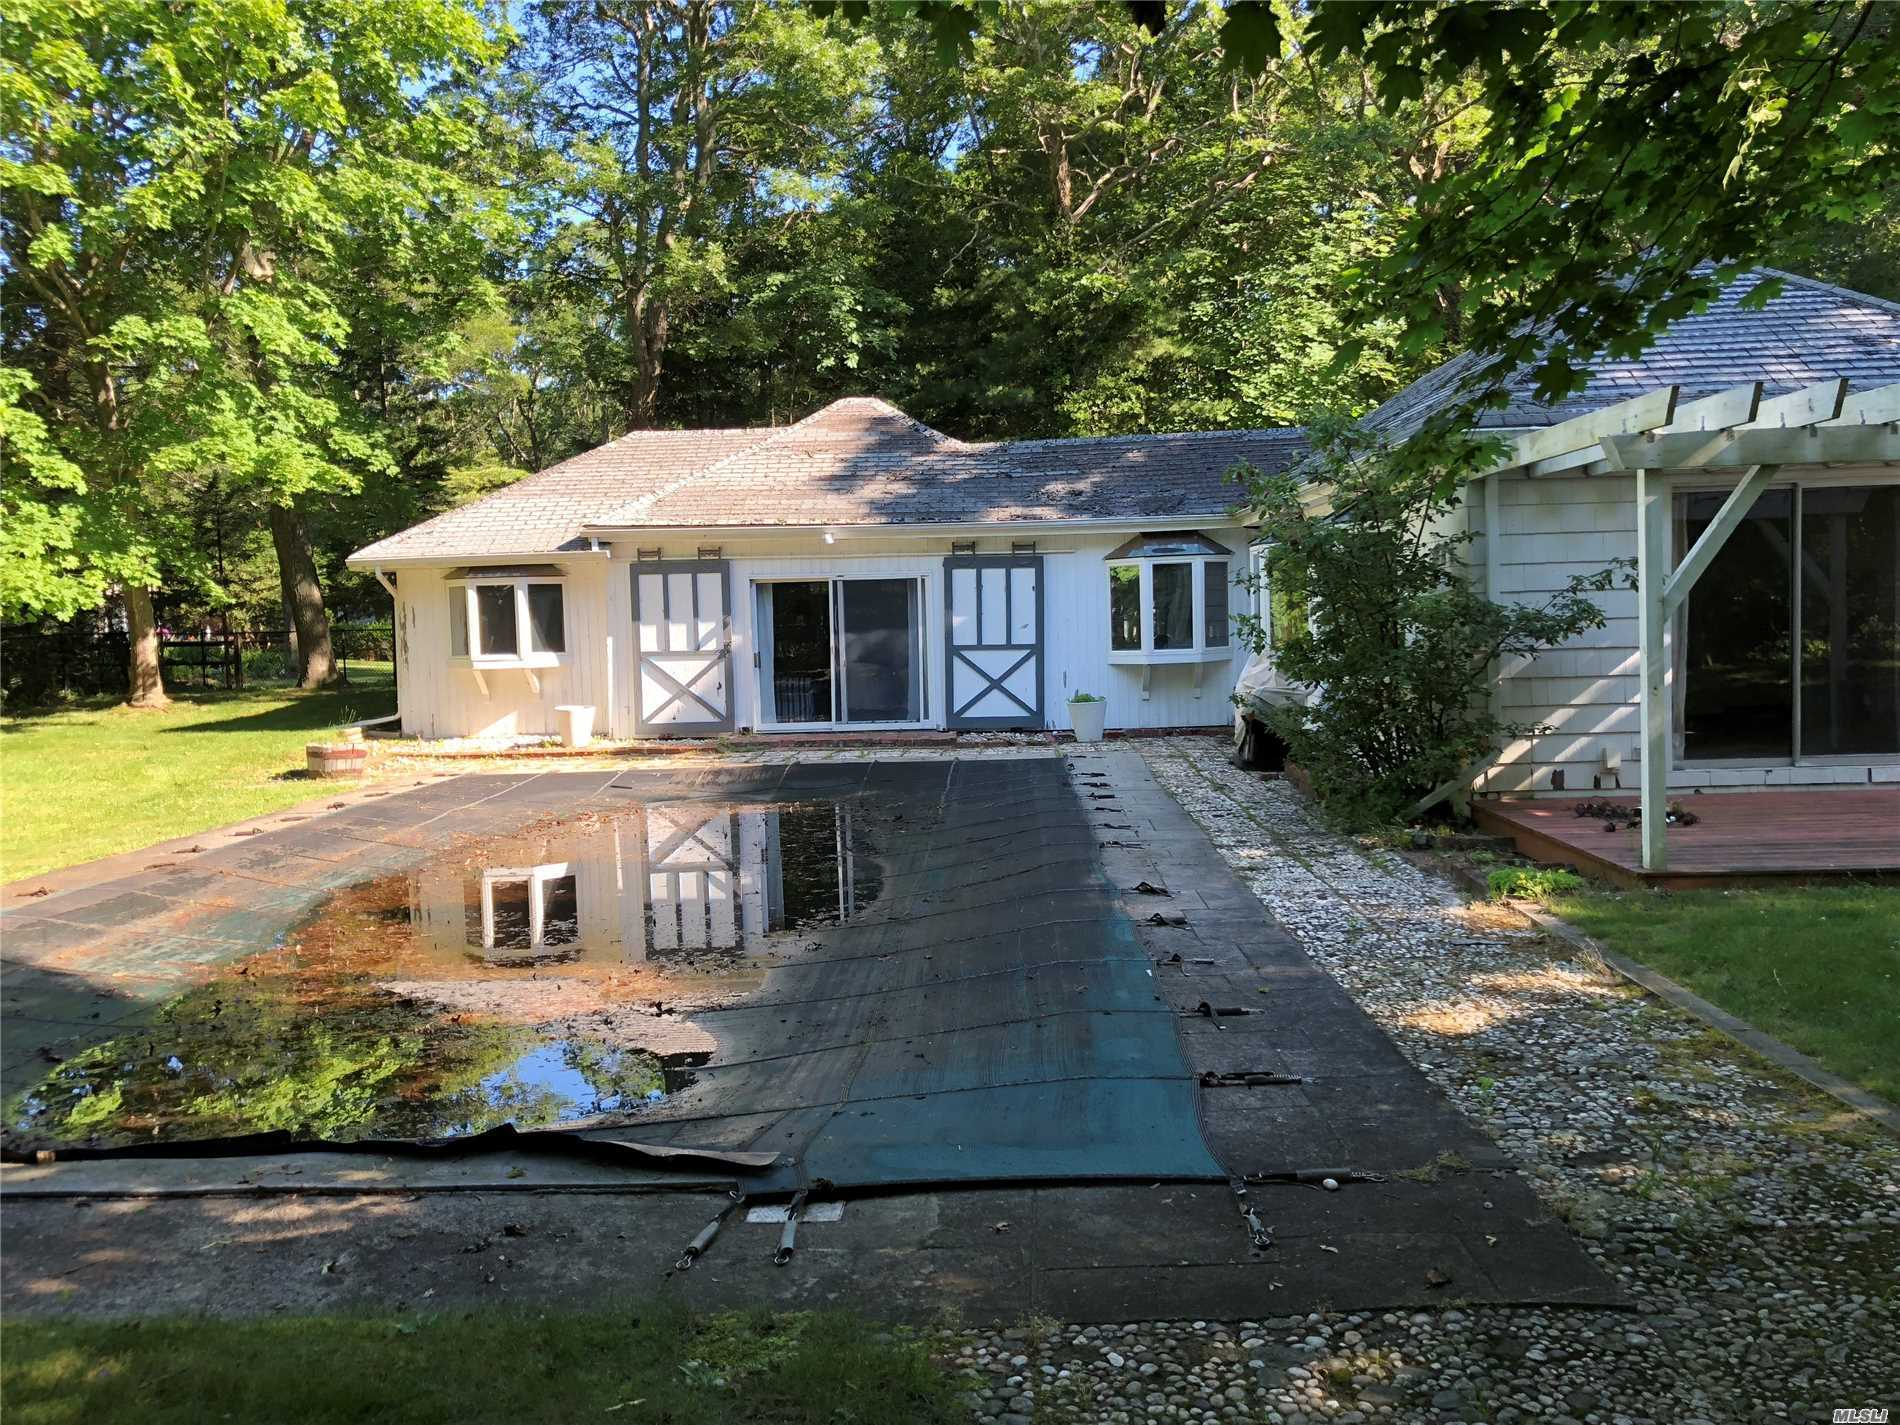 This Photo Is The Pool House Which Has 1400 Sq Ft. The Main House Is The Second Photo Which Has 2400.The Pool Is 20 X 40. This Property Is 0.85 Of An Acre In A Beautiful Secluded Location Near Np Private Beaches.. The Main House Is In Need Of Structural Repairs & Renovations. The Pool House Is Also In Need Of Renovations. We Have C Of O's For Both Structures . This Is The Least Expensive House For Sale On Np. This Is A Great Opportunity To Customize These 2 Structures To Suit Your Needs.